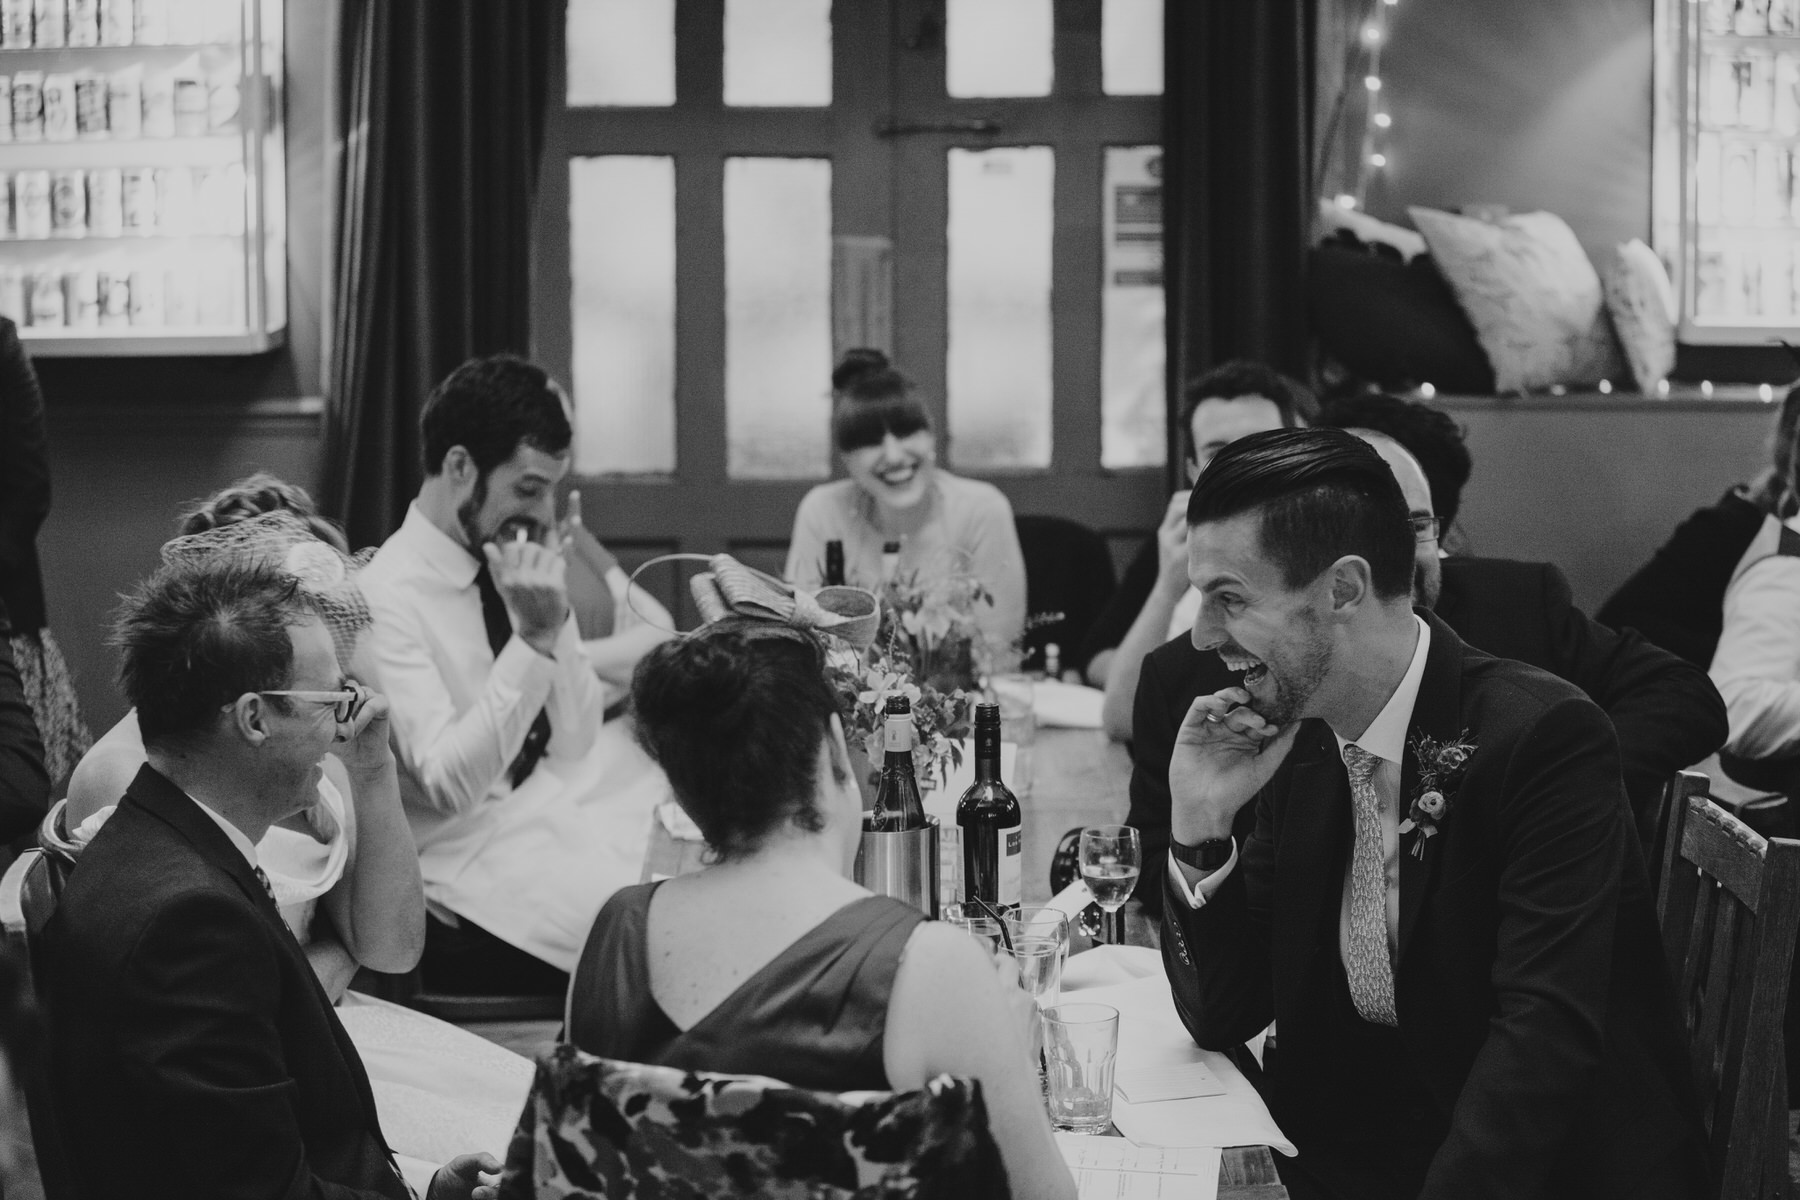 274-Londesborough-Pub-wedding-BW-reportage.jpg